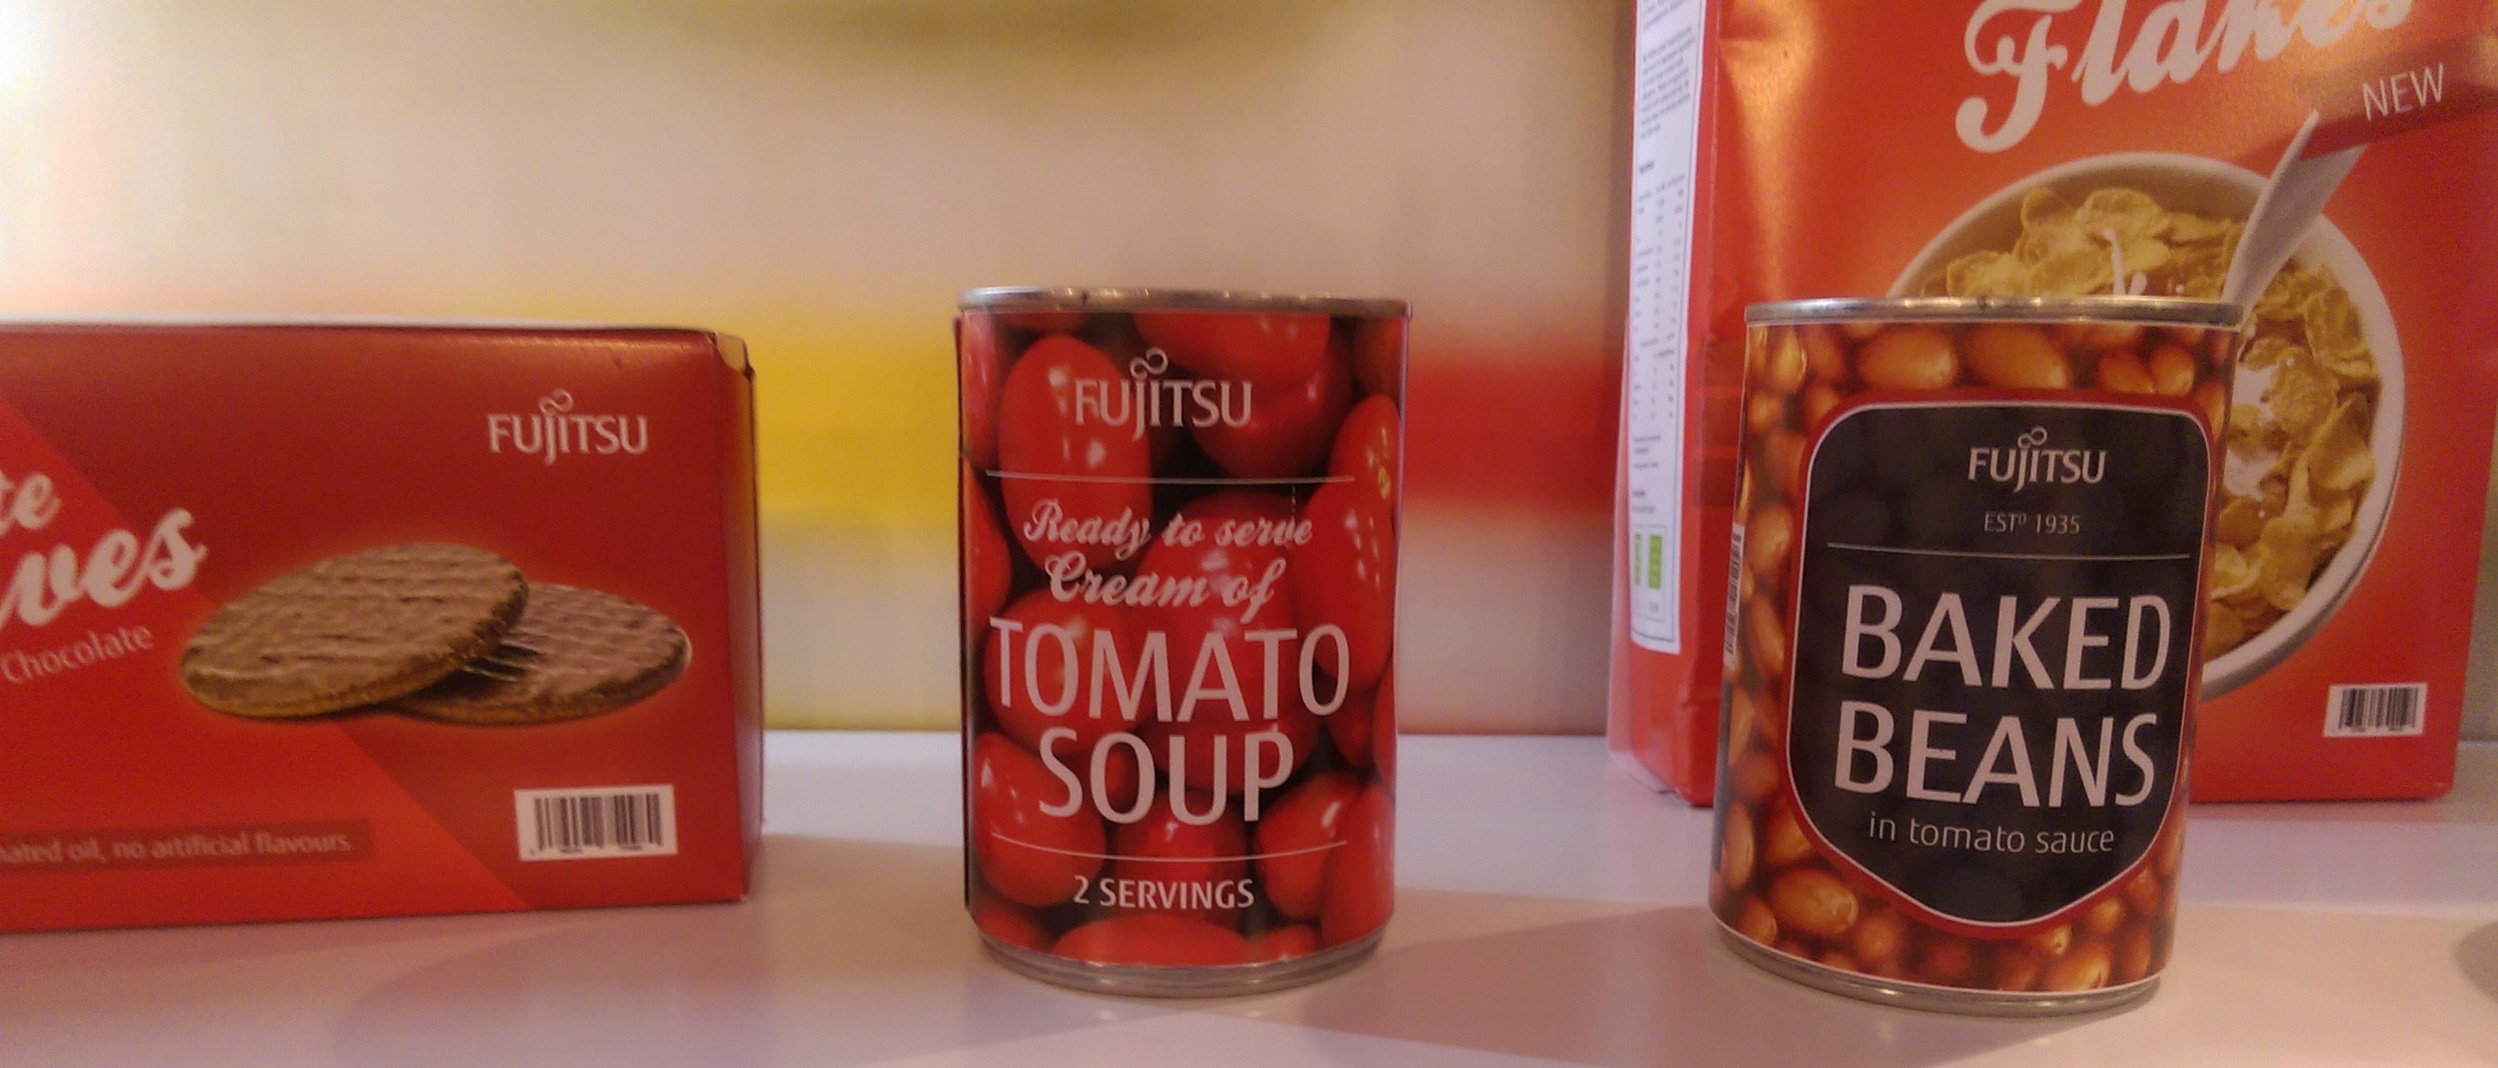 Bet you didn't know that Fujitsu make biscuits, beans, soup or FujiFlakes? Sadly, alongside their excellent business smartphones, these areonly available in Japan for now. OK, we know you're smarter than that - this was part of the Connected Retail Display Showcase.